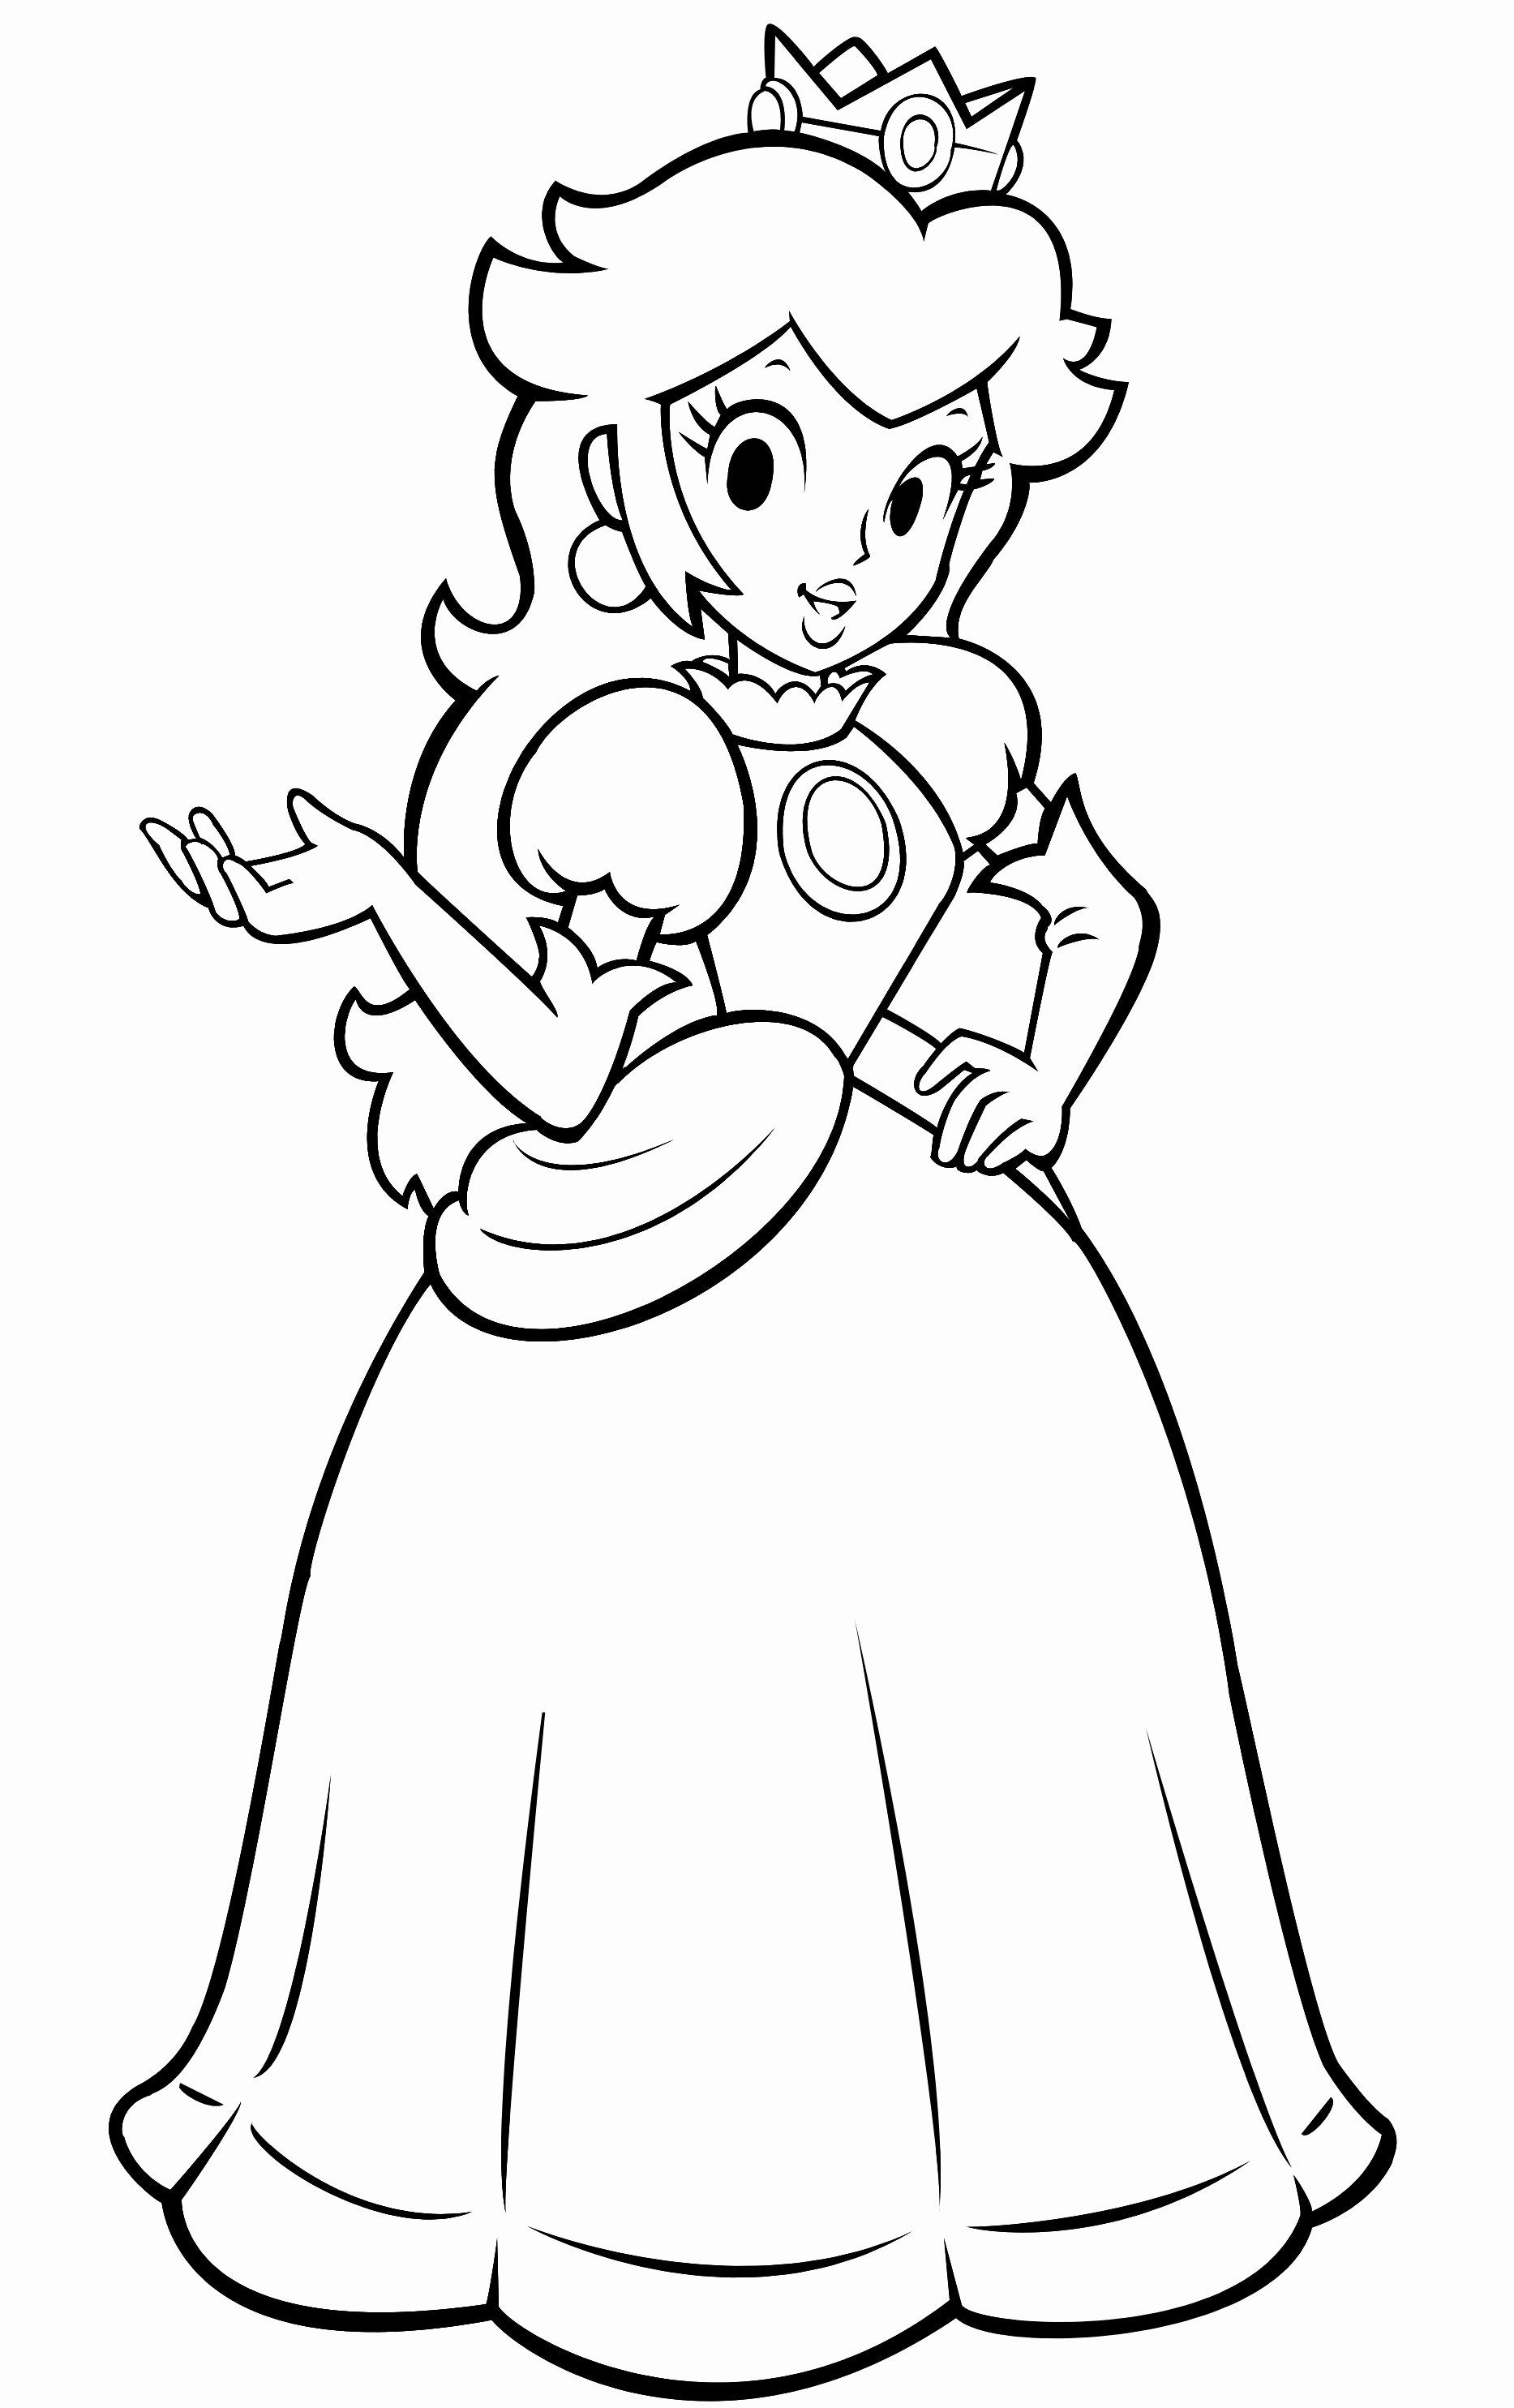 Children 039 S Coloring Pages Disney Awesome Princess Peach Coloring Pages